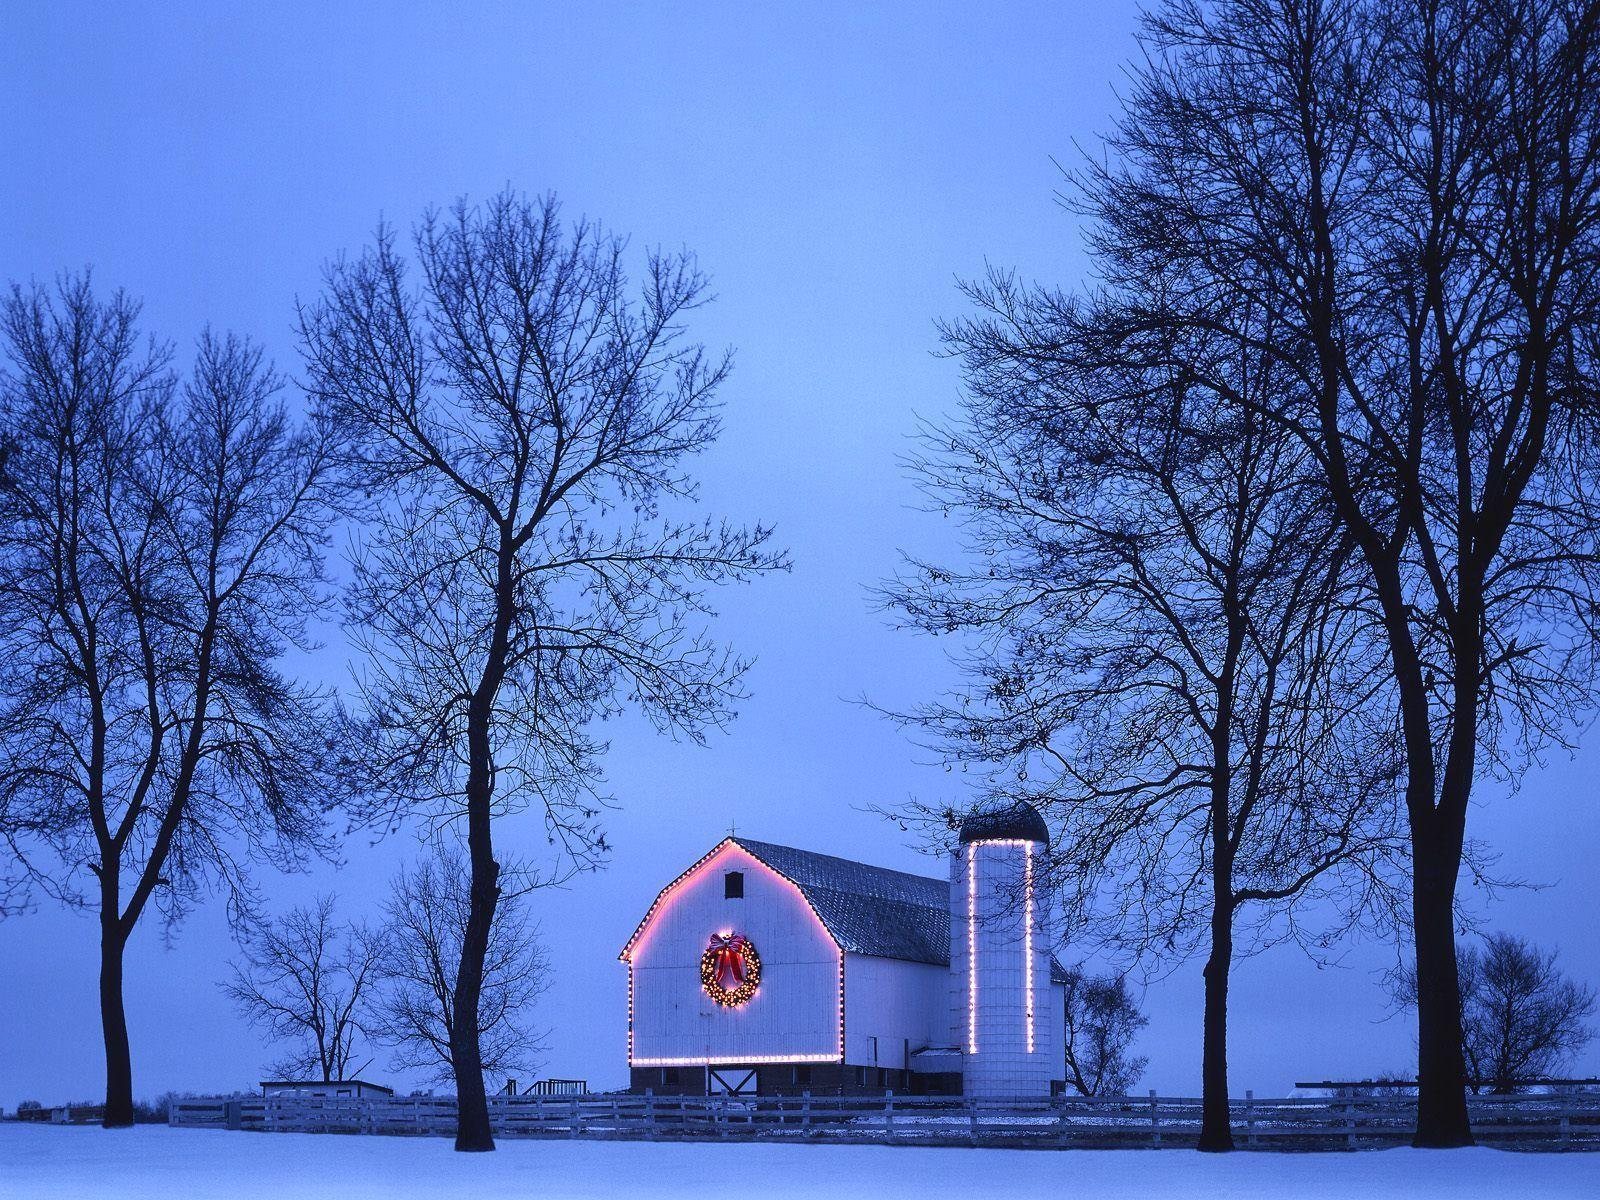 country christmas images - photo #4